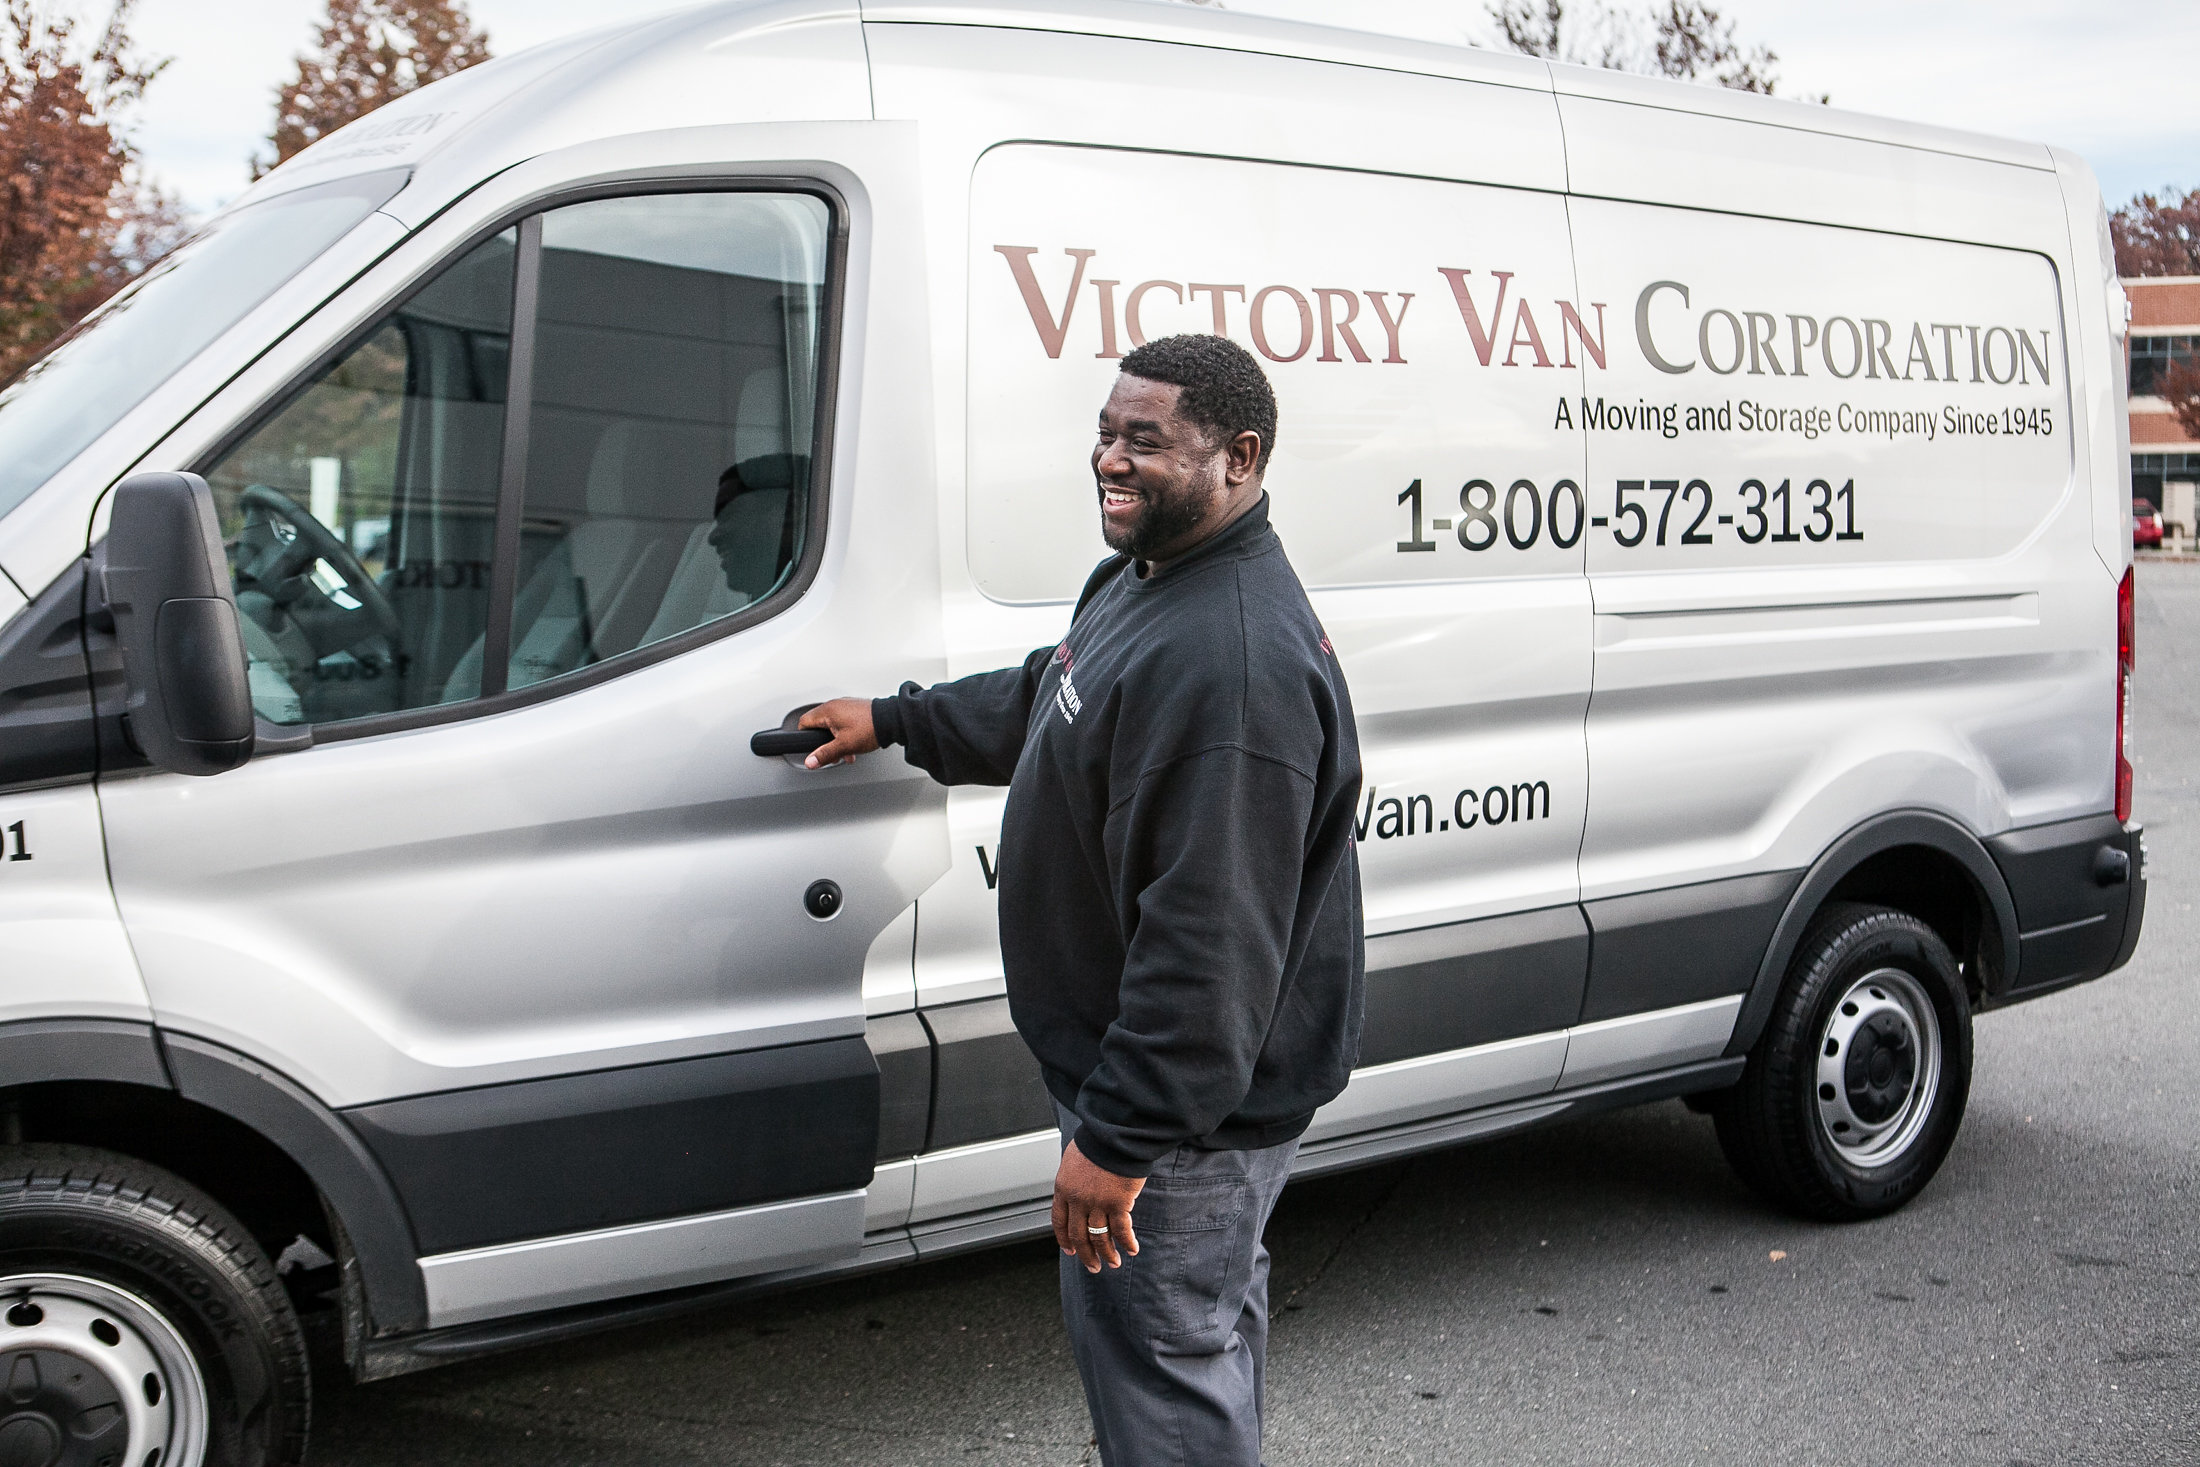 victory van truck and employee